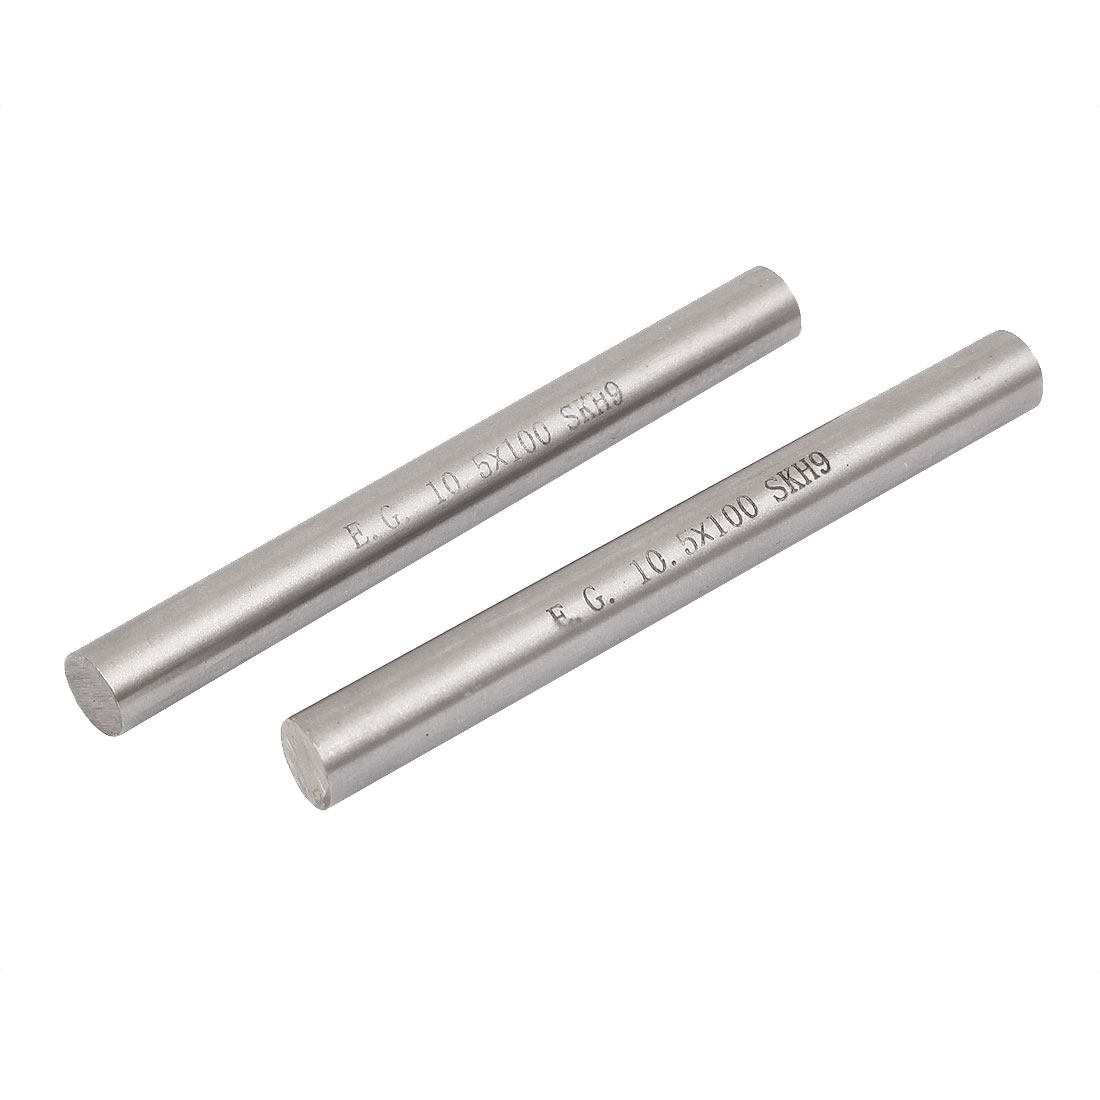 10.5mm x 100mm Metal Machine Turning Tools Rod Bar Lathe Round Stick 2pcs